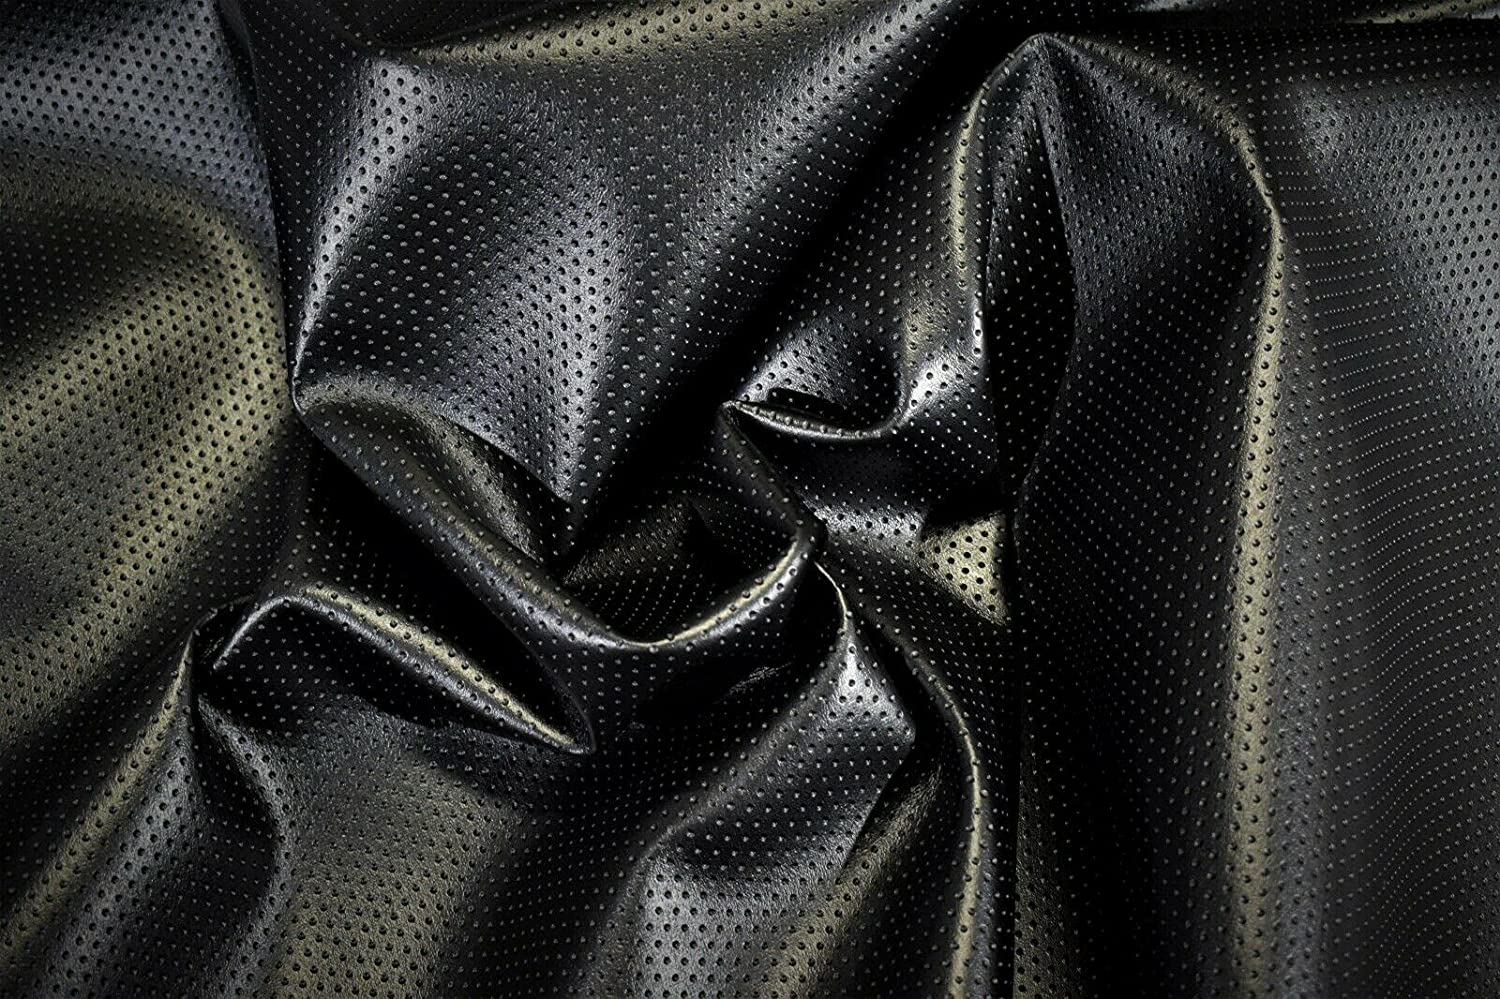 Fabric 10 store Yards -Marine Vinyl Black Ca Outdoor Perforated Challenge the lowest price of Japan ☆